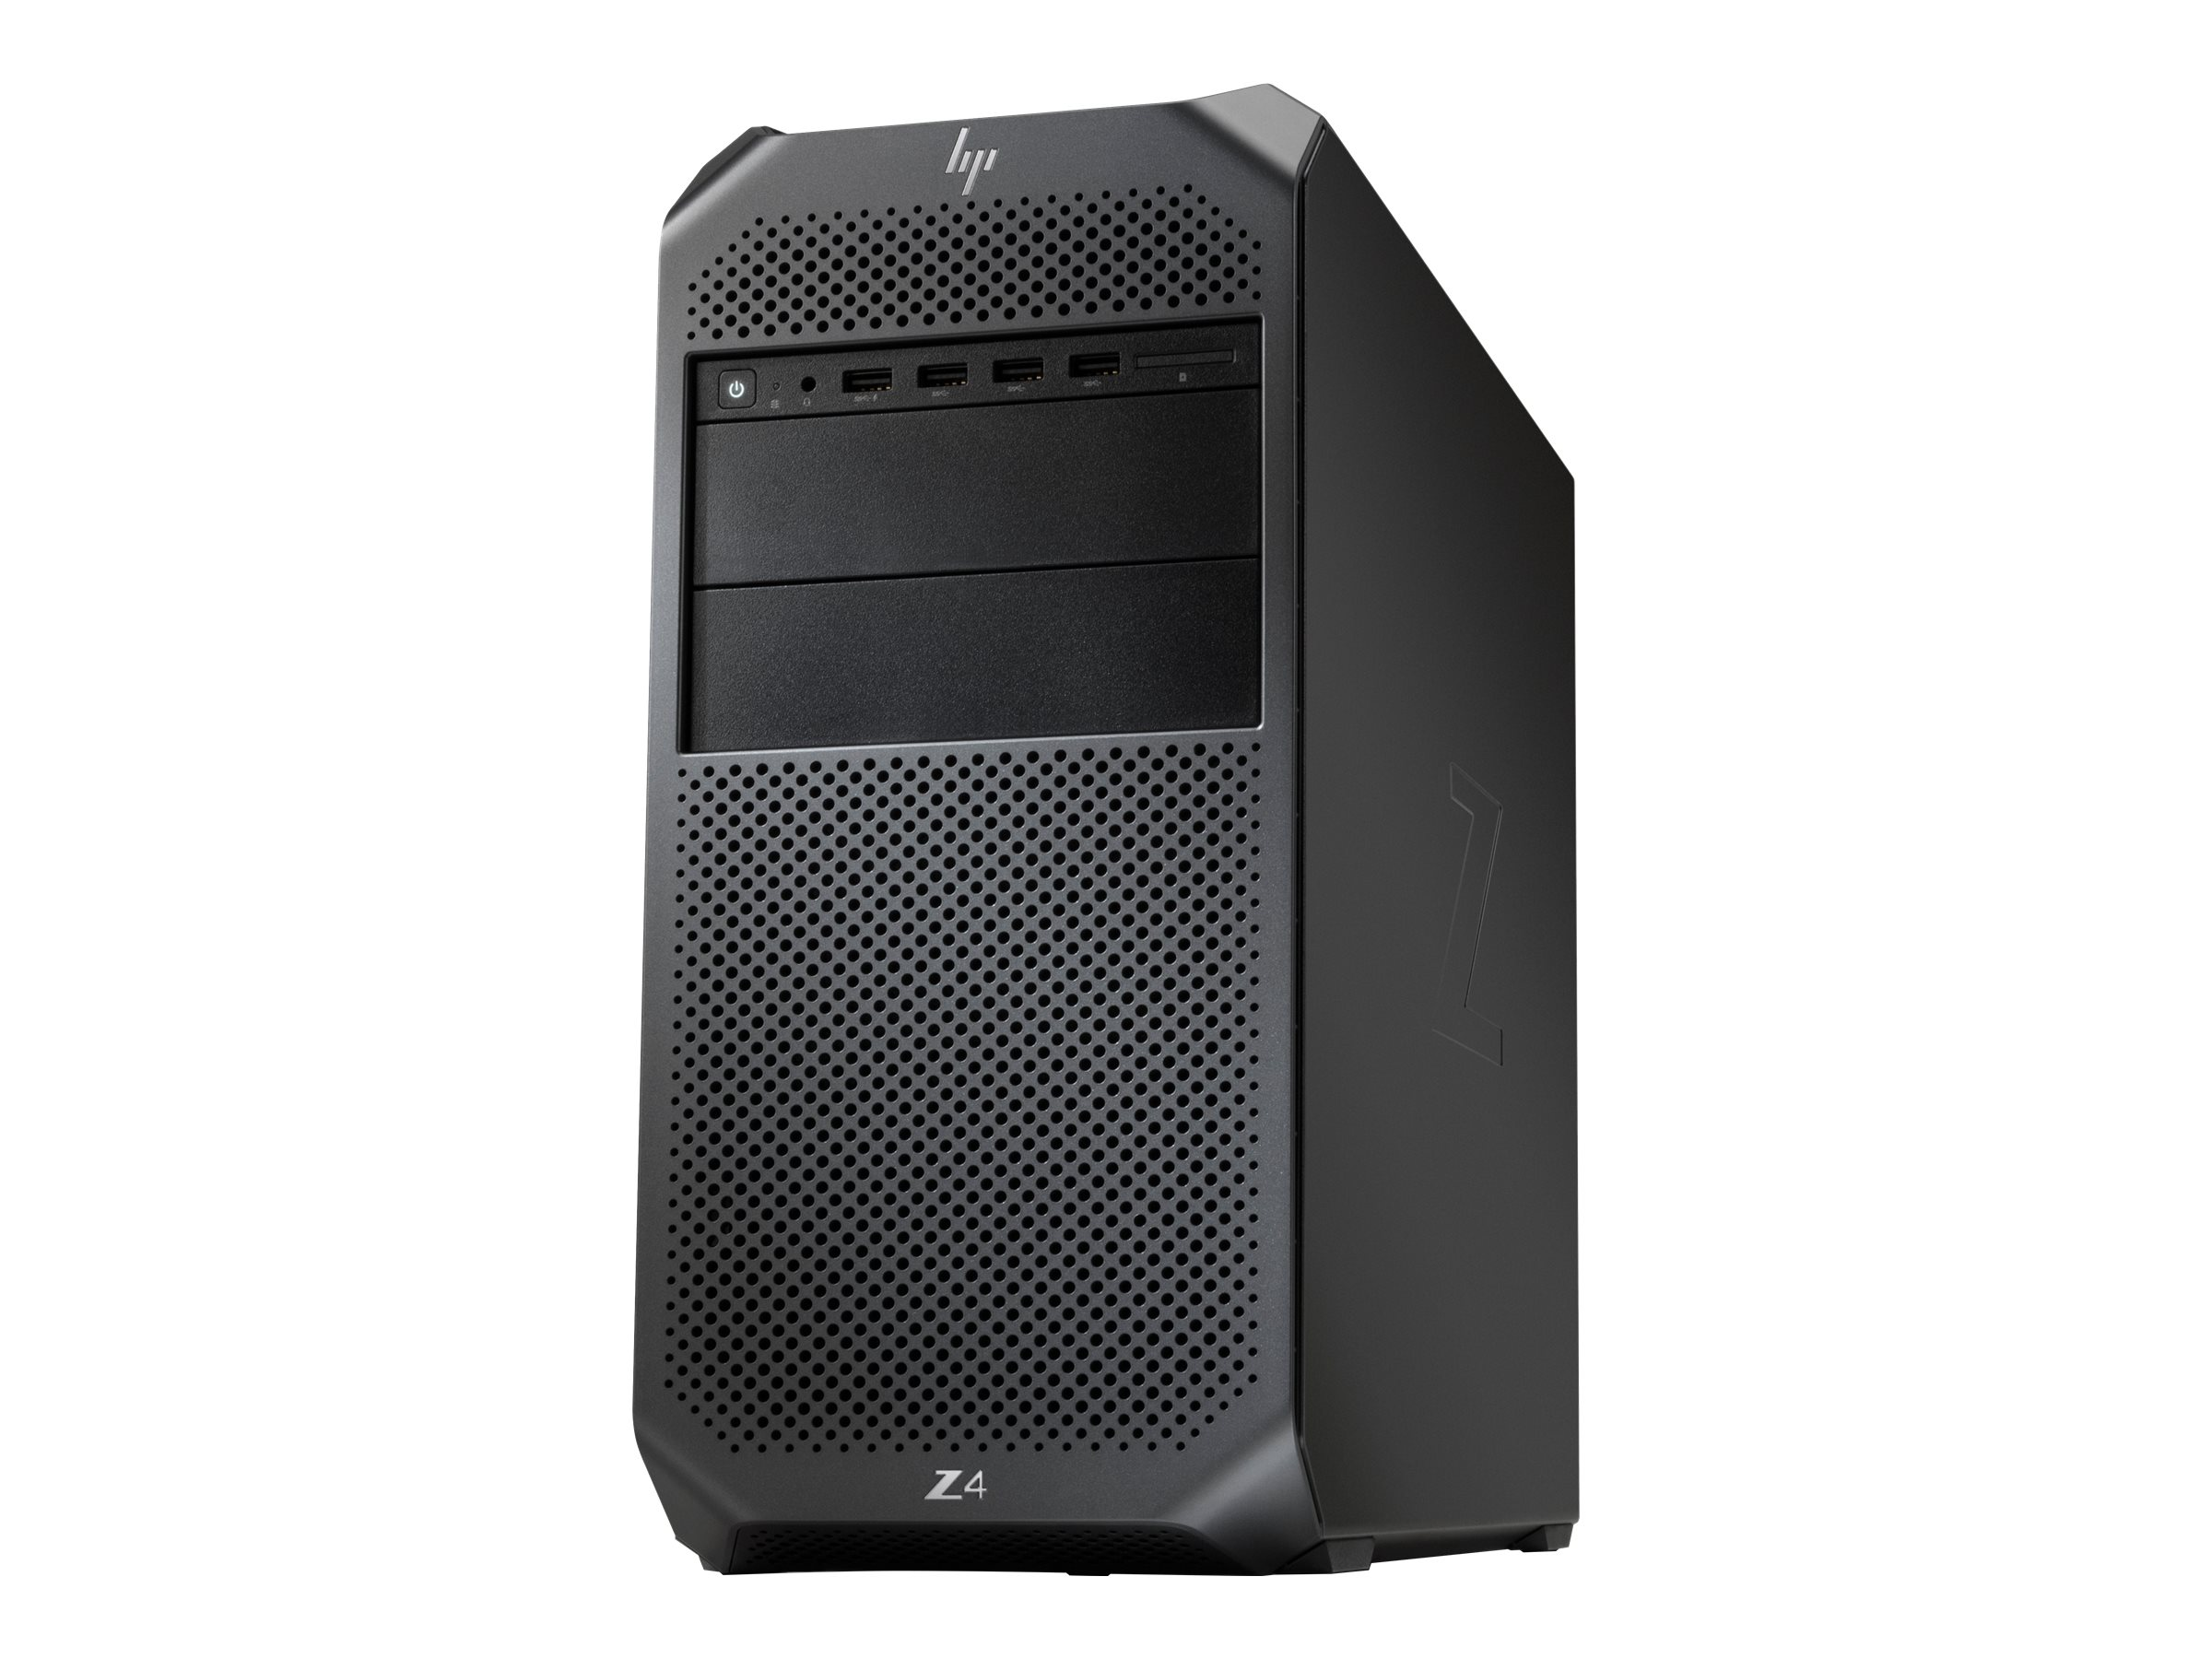 HP Workstation Z4 G4 - MT - 4U - 1 x Xeon W-2133 / 3.6 GHz - RAM 16 GB - SSD 256 GB